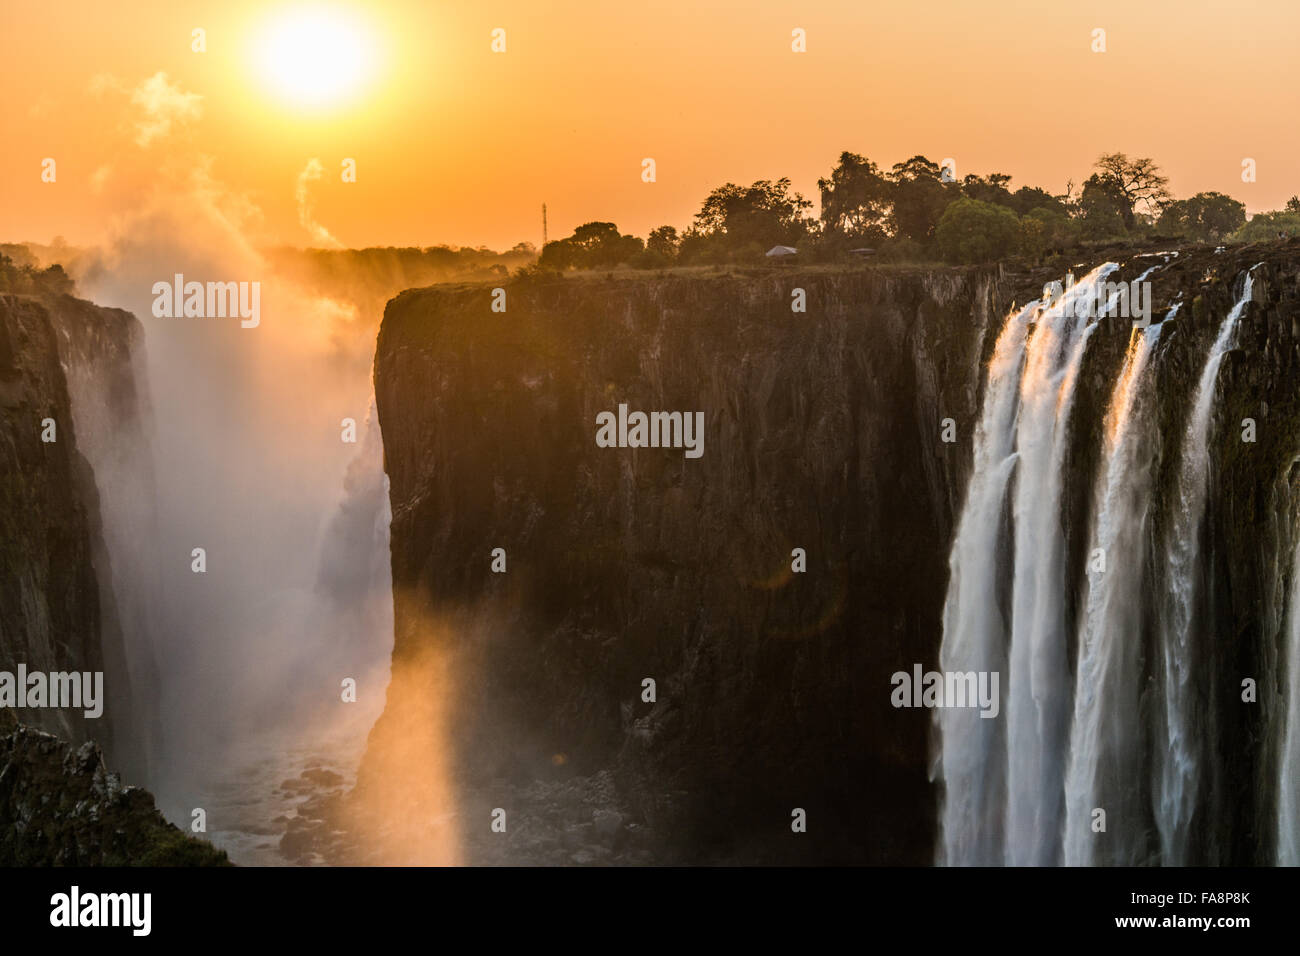 Sunset at the Victoria Falls in Zambia - Stock Image